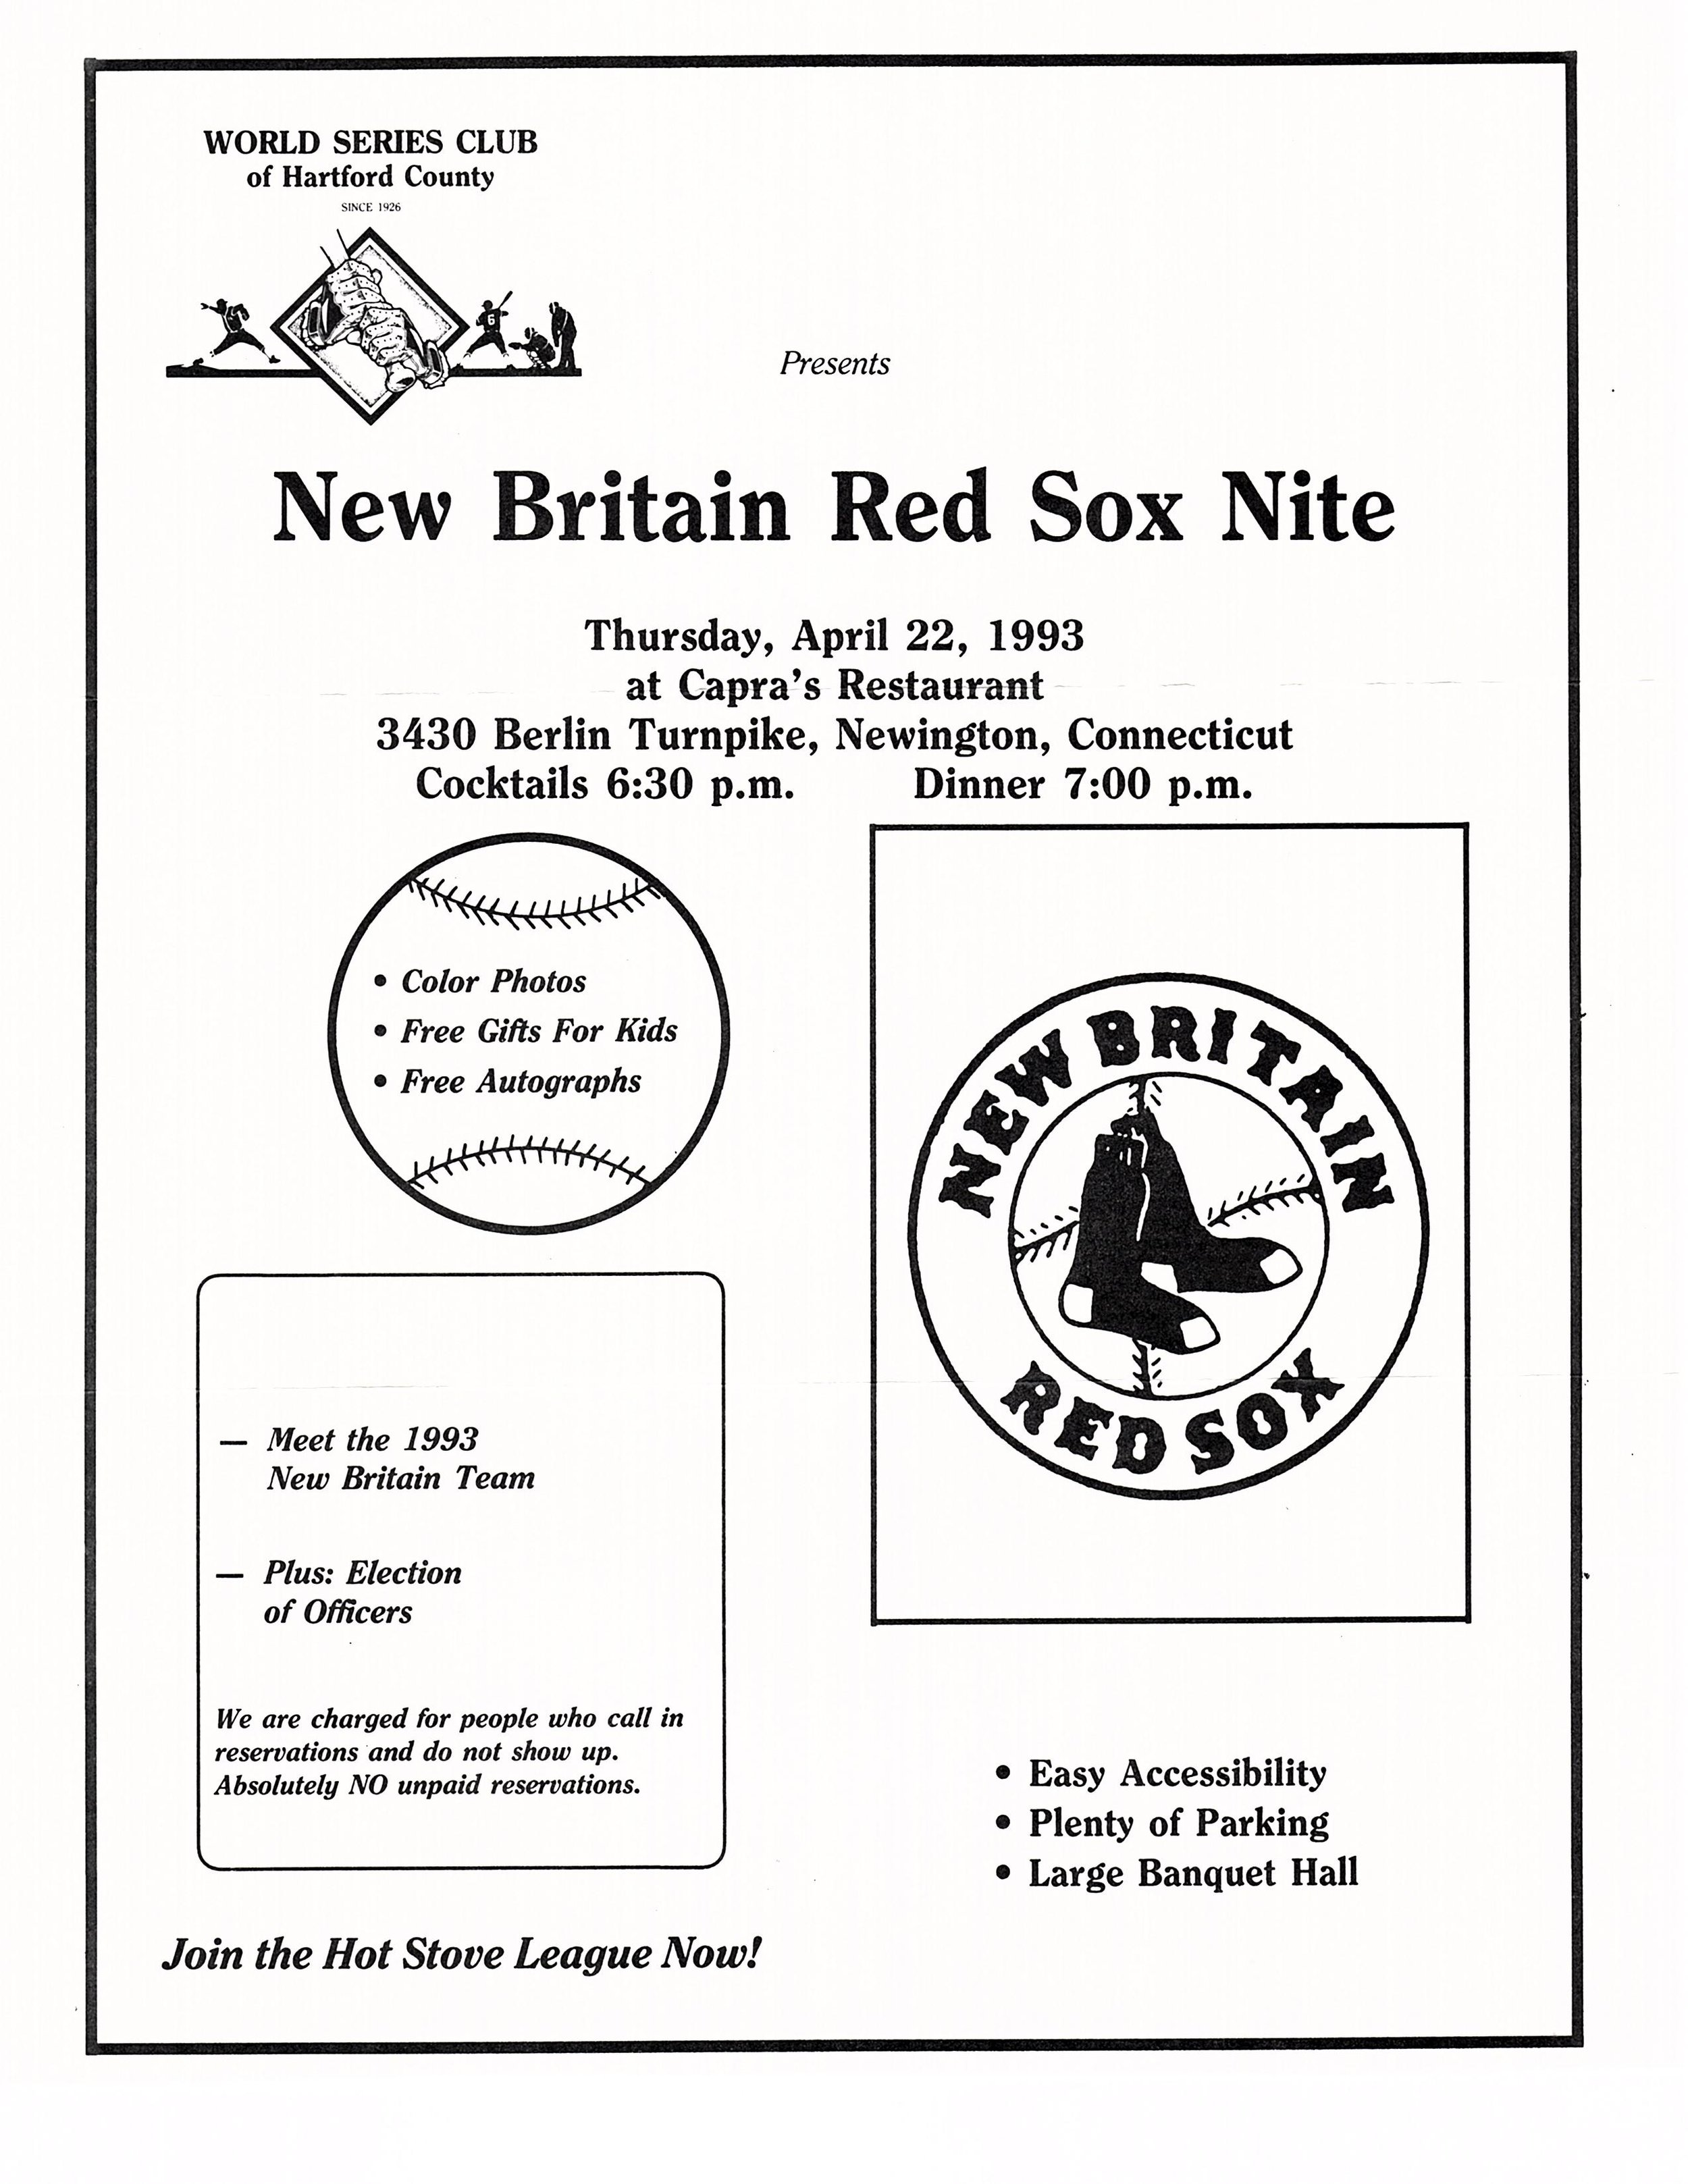 19930422 New Britain Red Sox.jpg